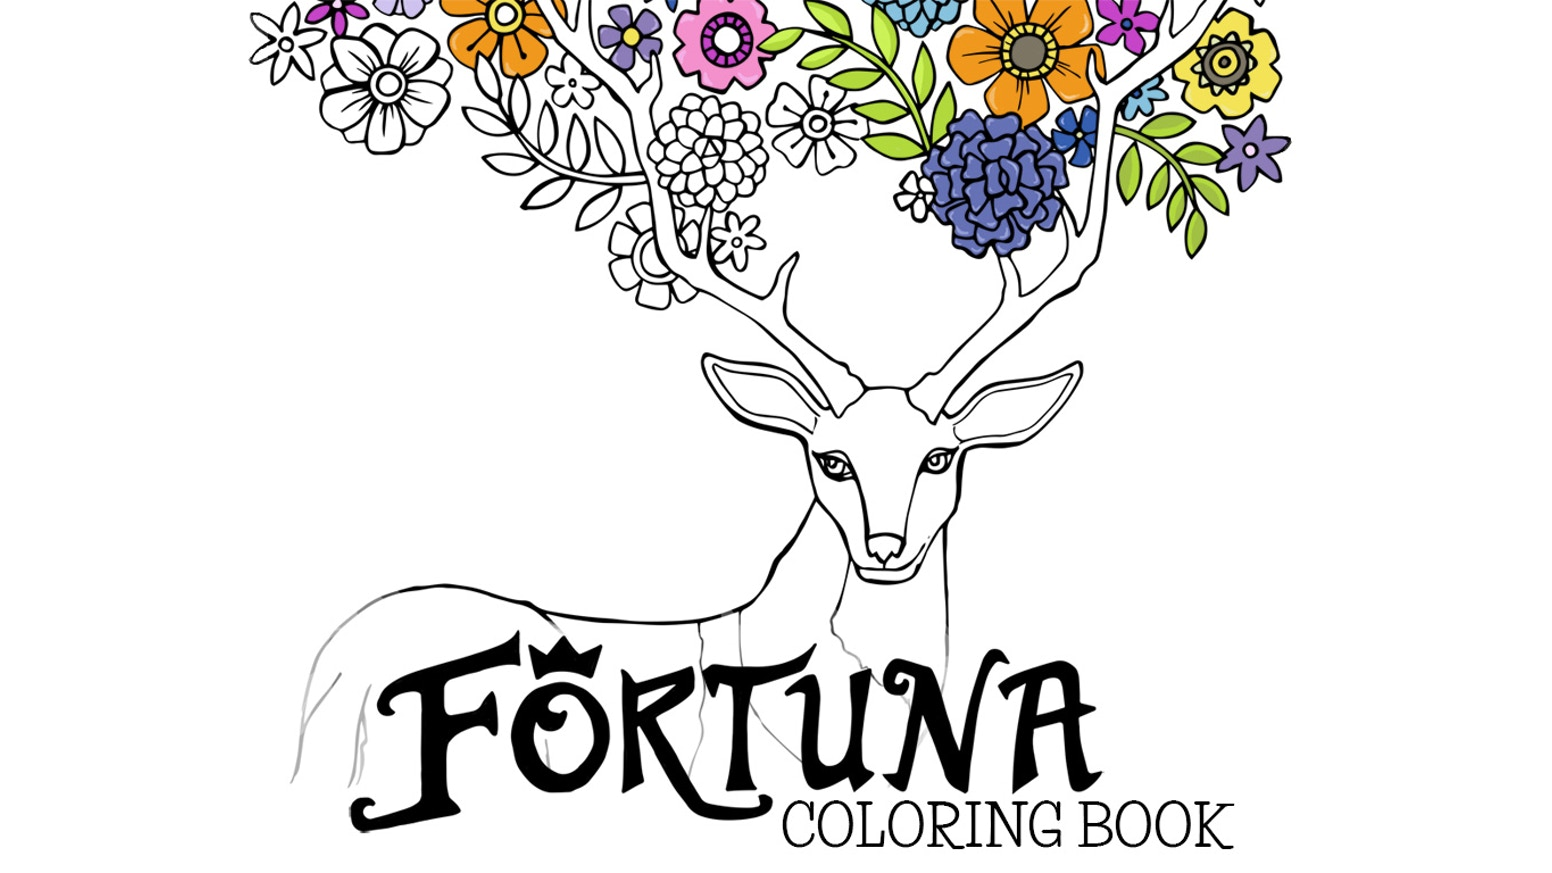 Coloring book html5 - Color More Stress Less Enjoy The Relaxing Practice Of Coloring While Exploring The World